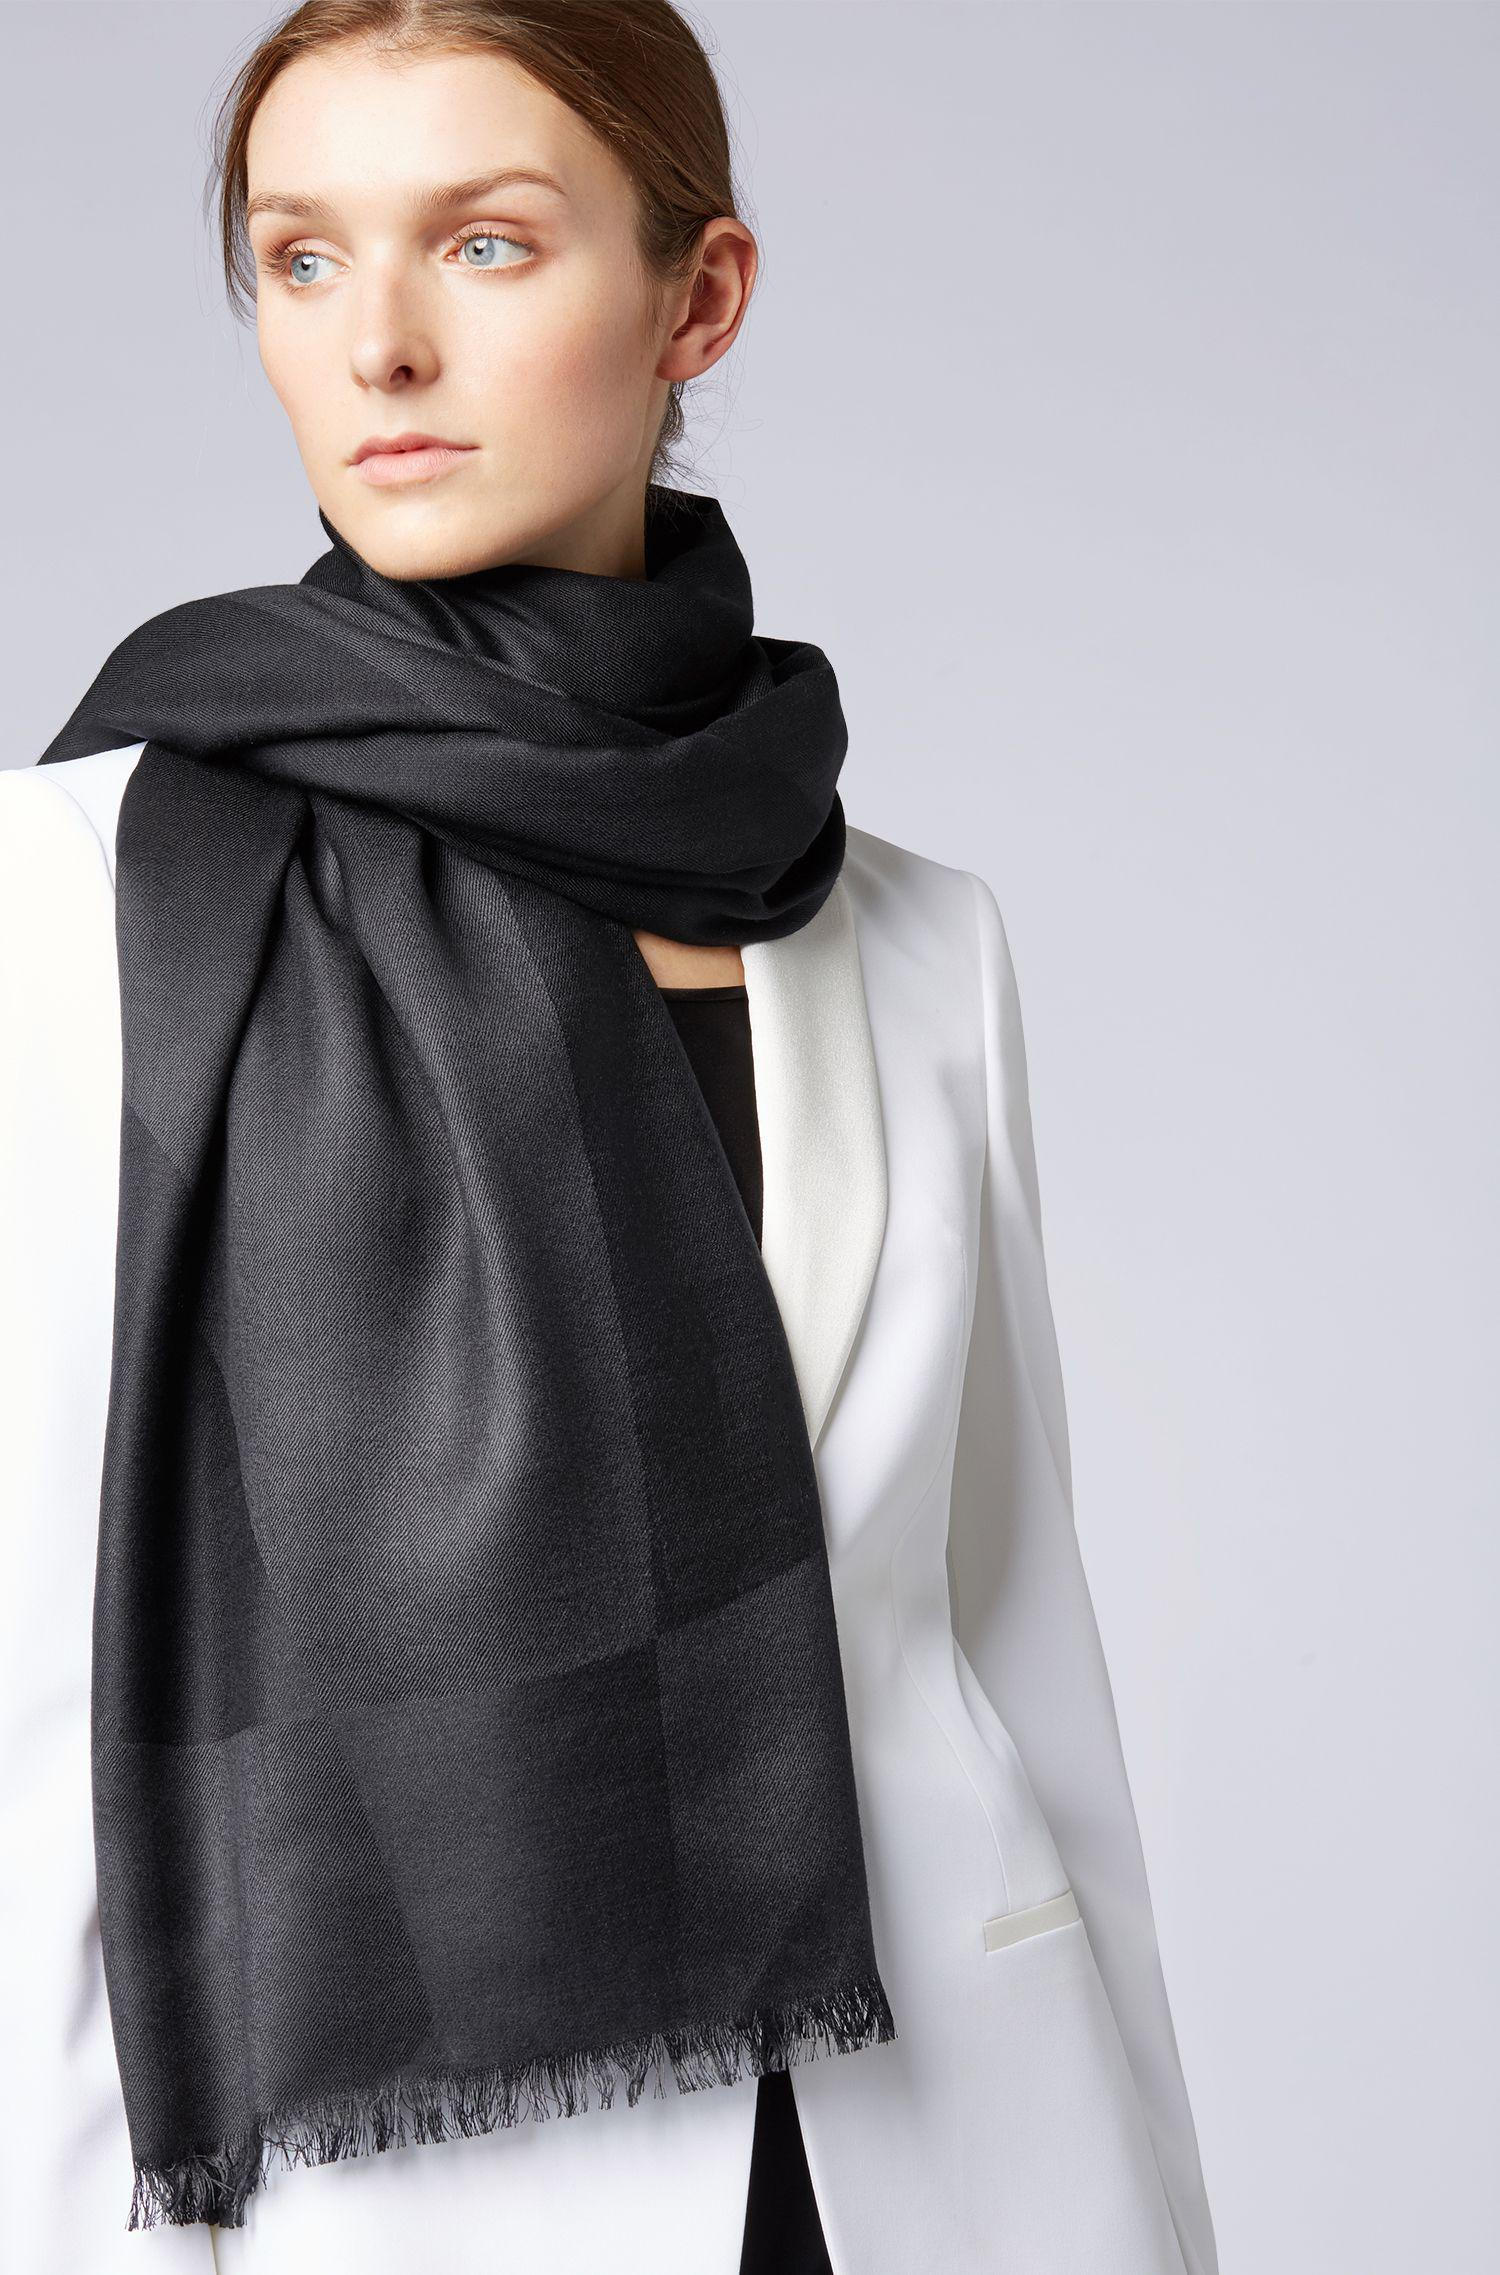 Lyst - BOSS Graphic-jacquard Scarf In Silk With Wool in Black 52cf8298578